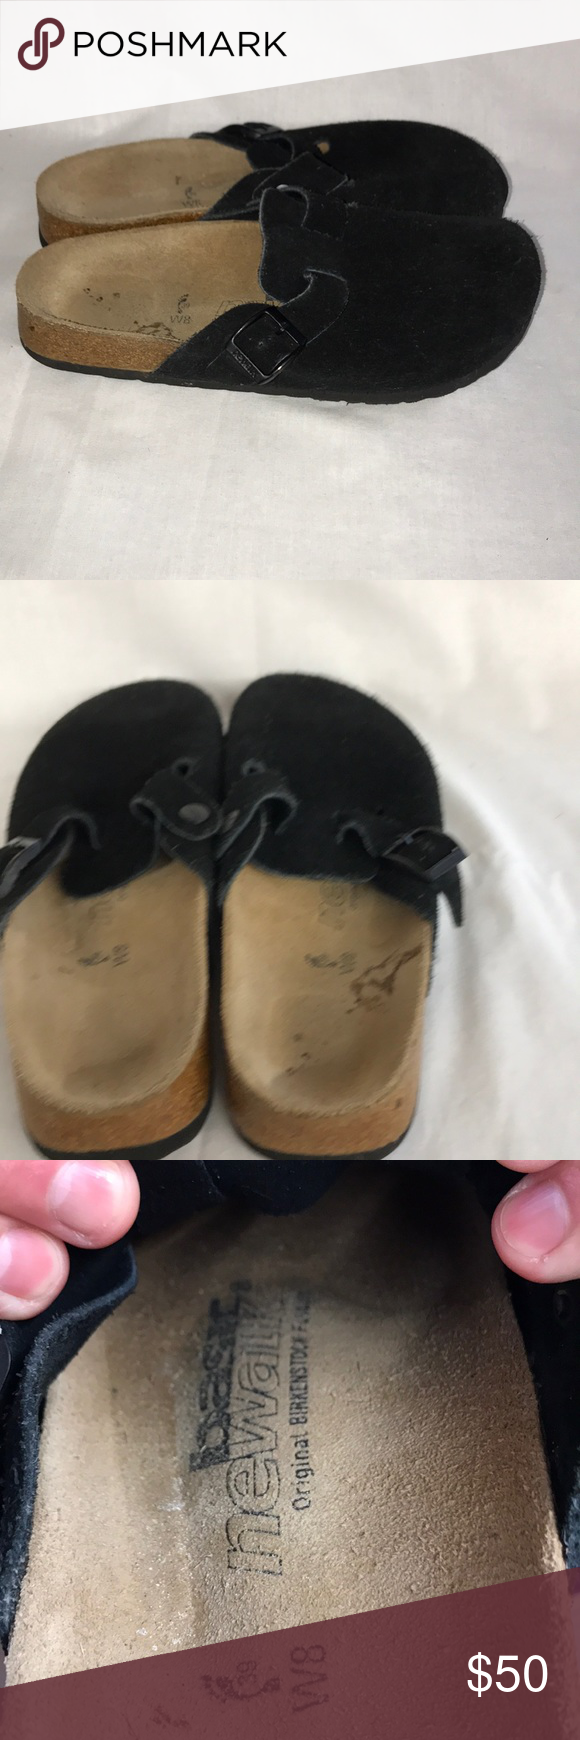 4848b907ce67 Newalk birkenstock clogs black suede birkenstocks birkenstock shoes sandals  png 580x1740 Poshmark ladies newalk birkenstock flip